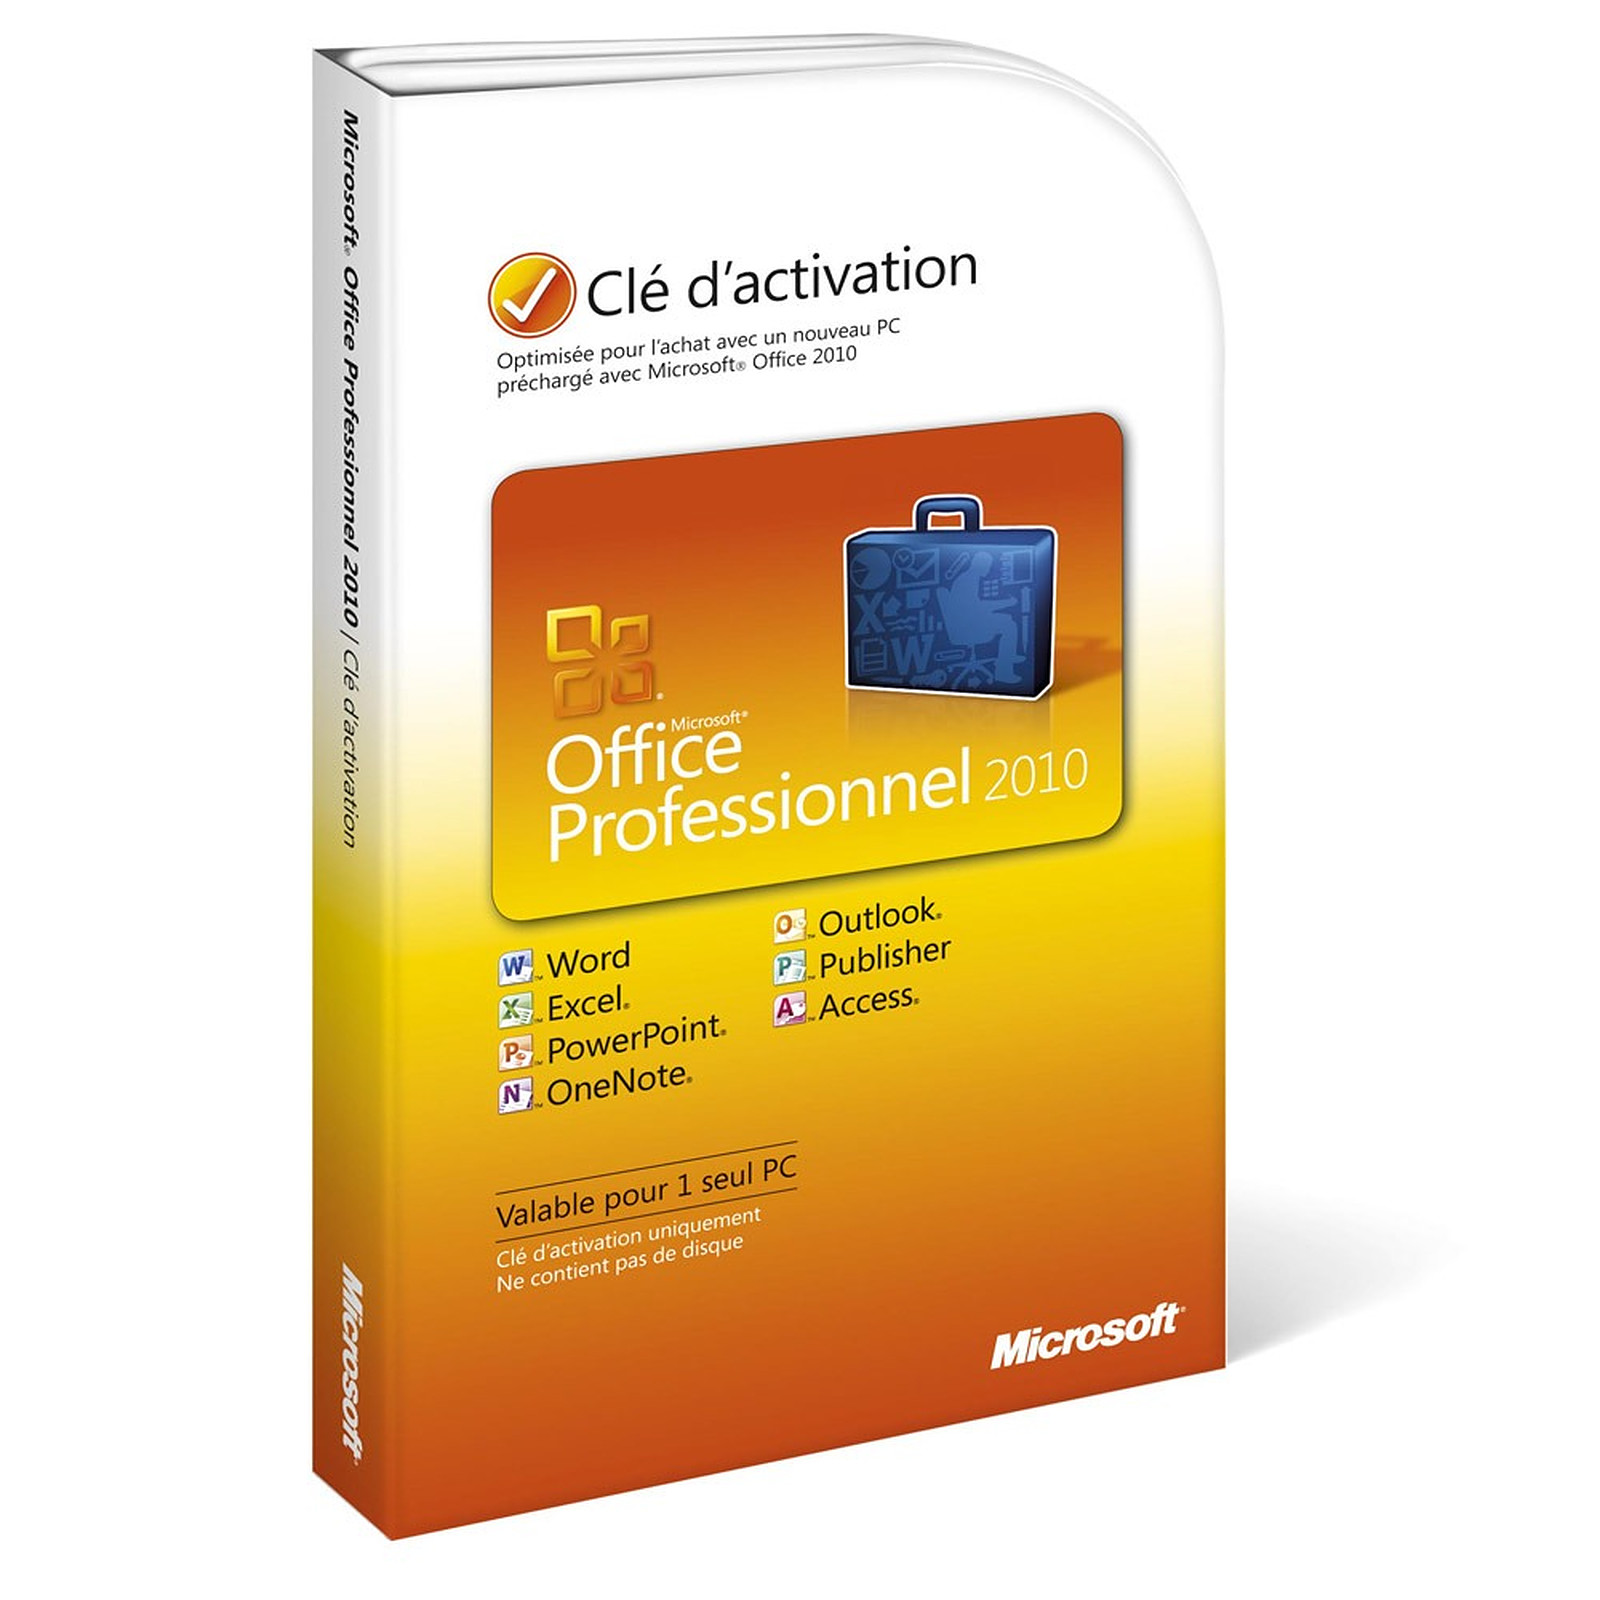 Microsoft Office Professionnel 2010 - 1 PC - Carte d'activation